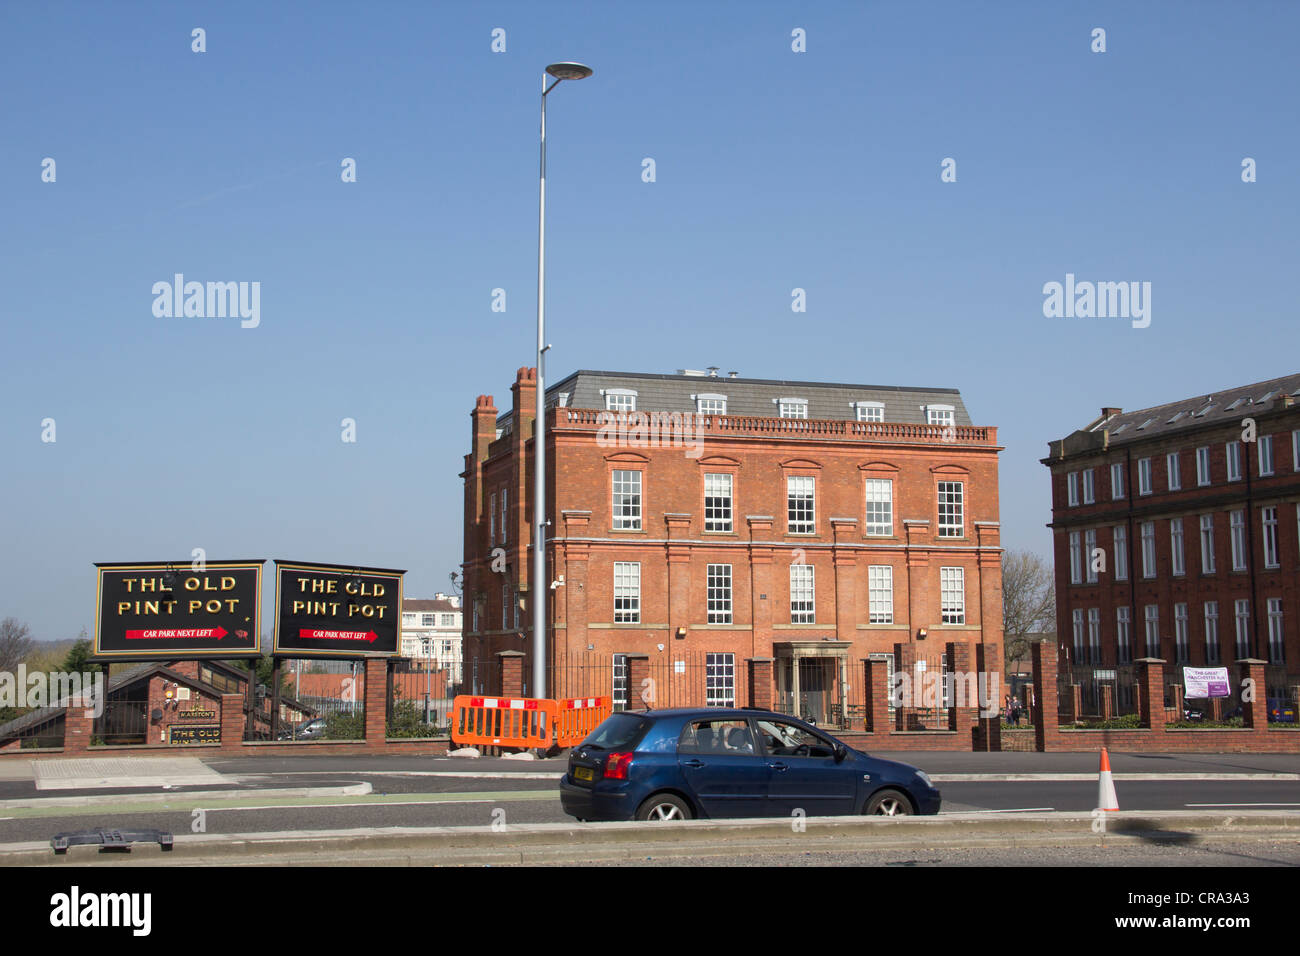 The Cresent, Salford with University of Salford building Adelphi House to the right and 'The Old Pint Pot' - Stock Image